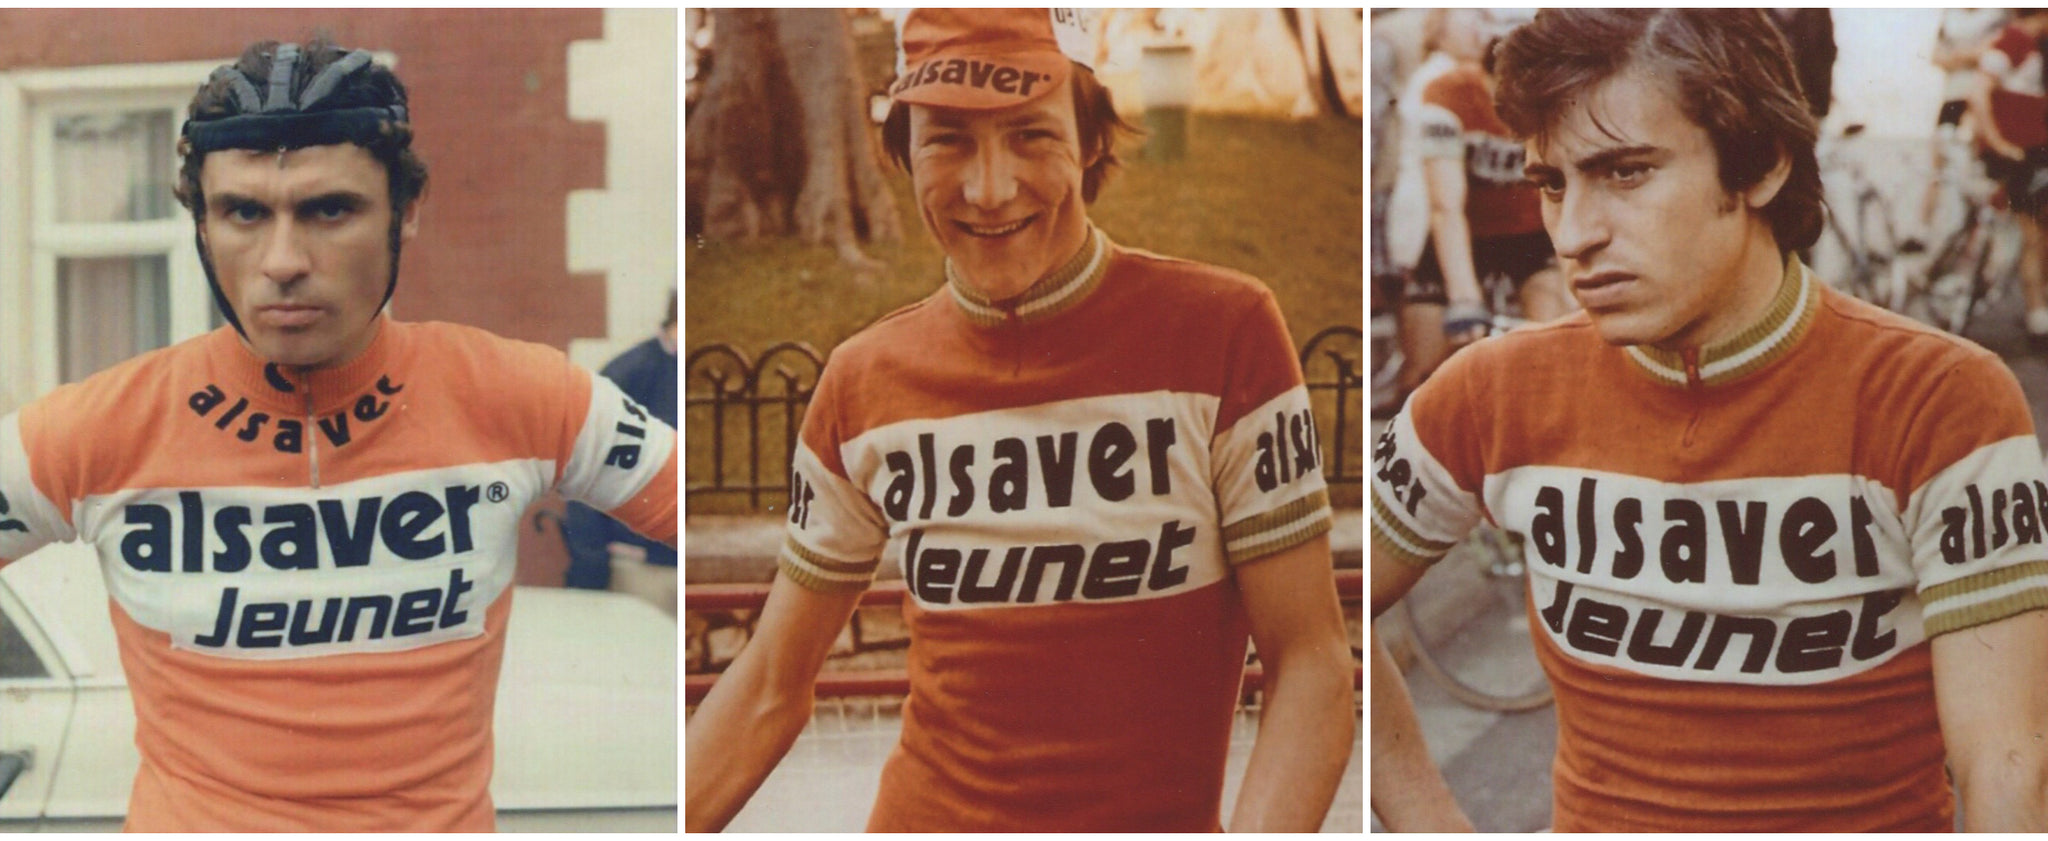 Alsaver Jeunet 1975 Cycling team members: Y. Benaets, M. Laurent and A. Gutierrez.